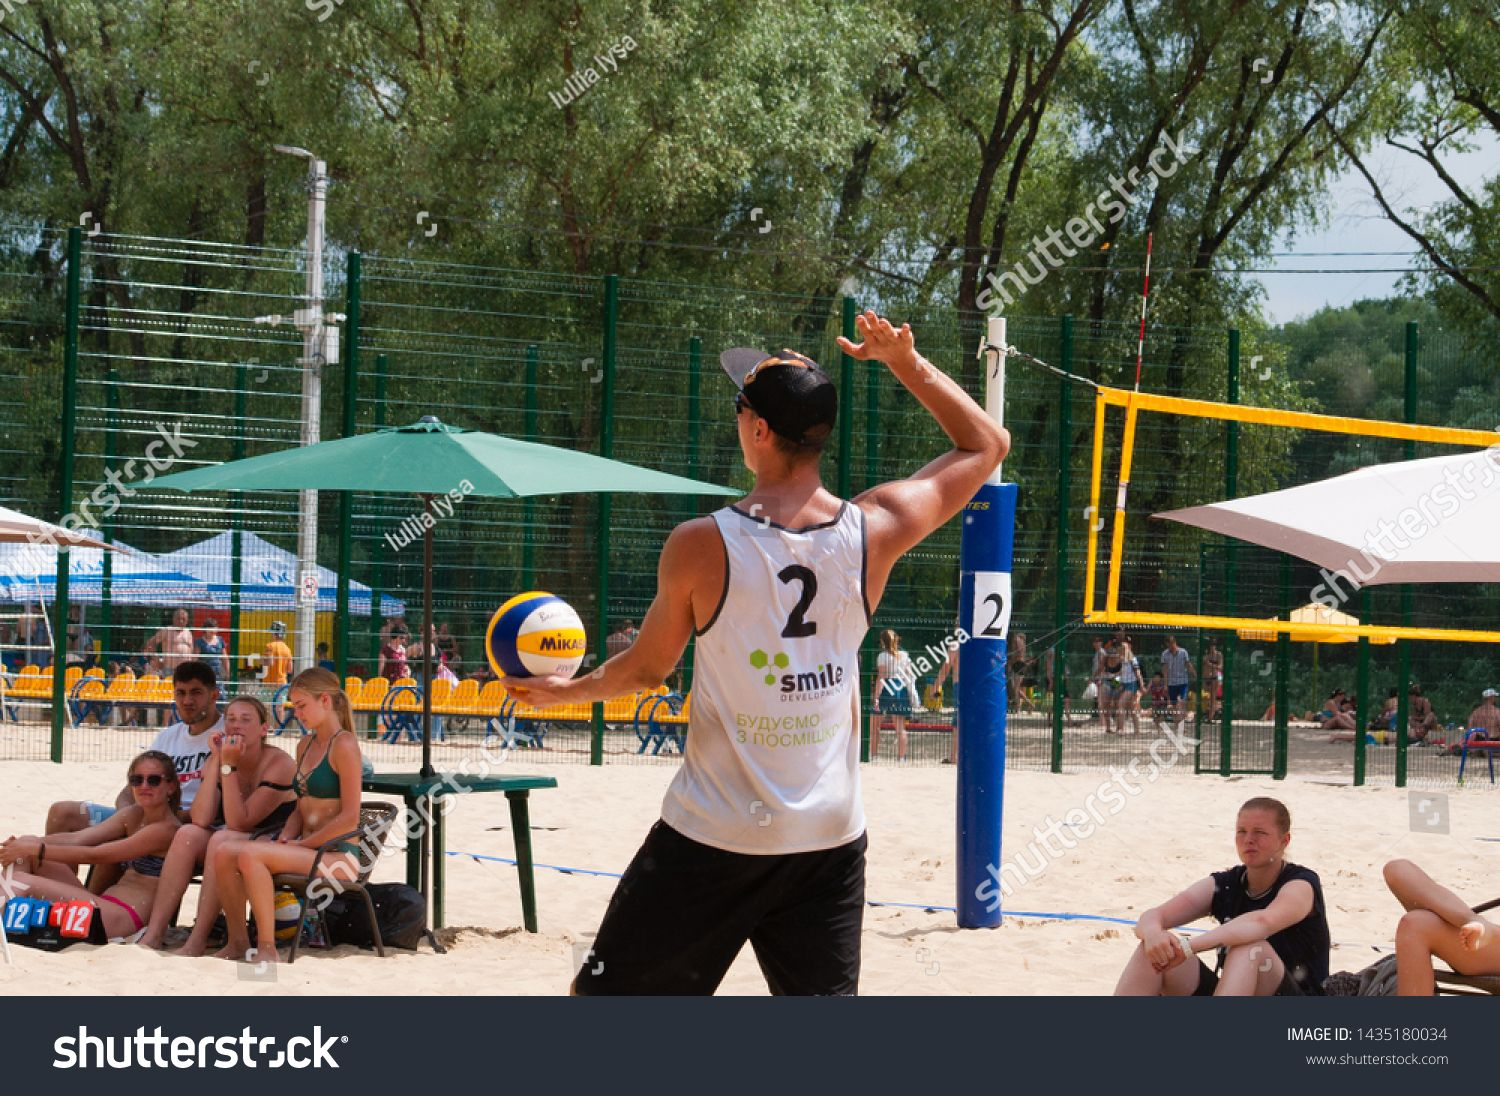 Ukraine Chernigov June 9 2019 Beach Volleyball Championship Of The City Beautiful Young Sports Strong Men Play Vol In 2020 Beach Volleyball Play Volleyball Sports